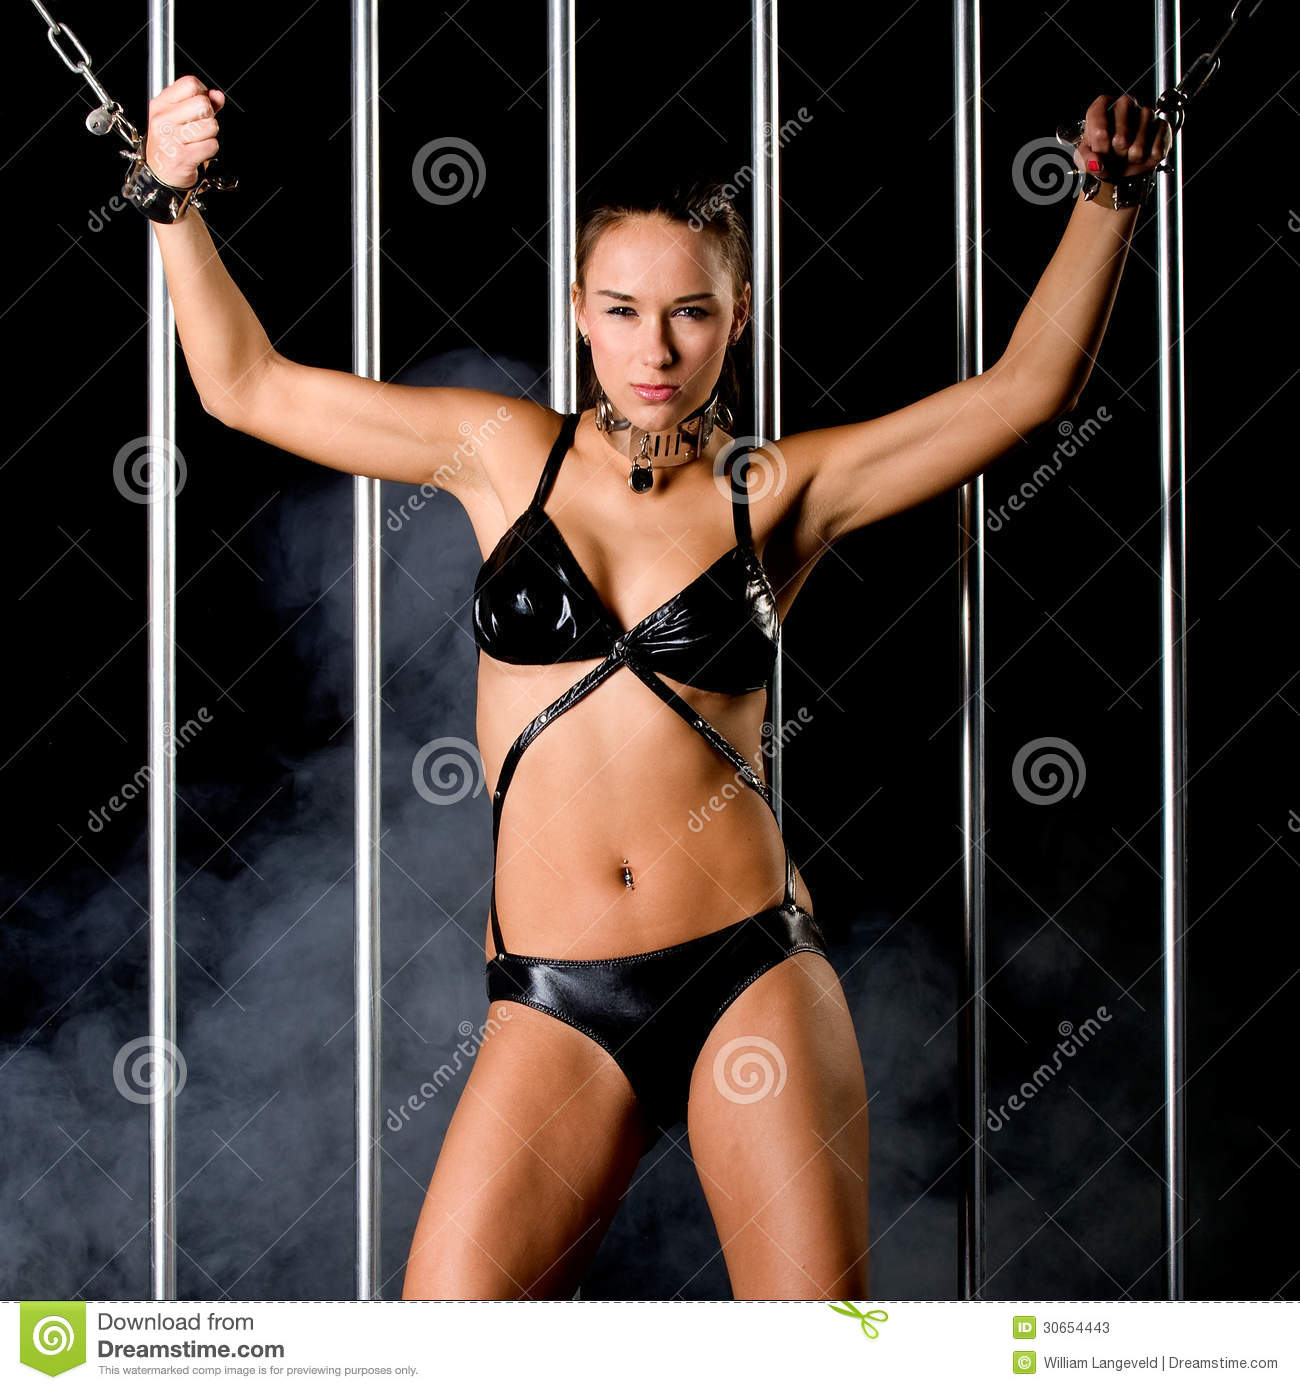 Women in bondage photos